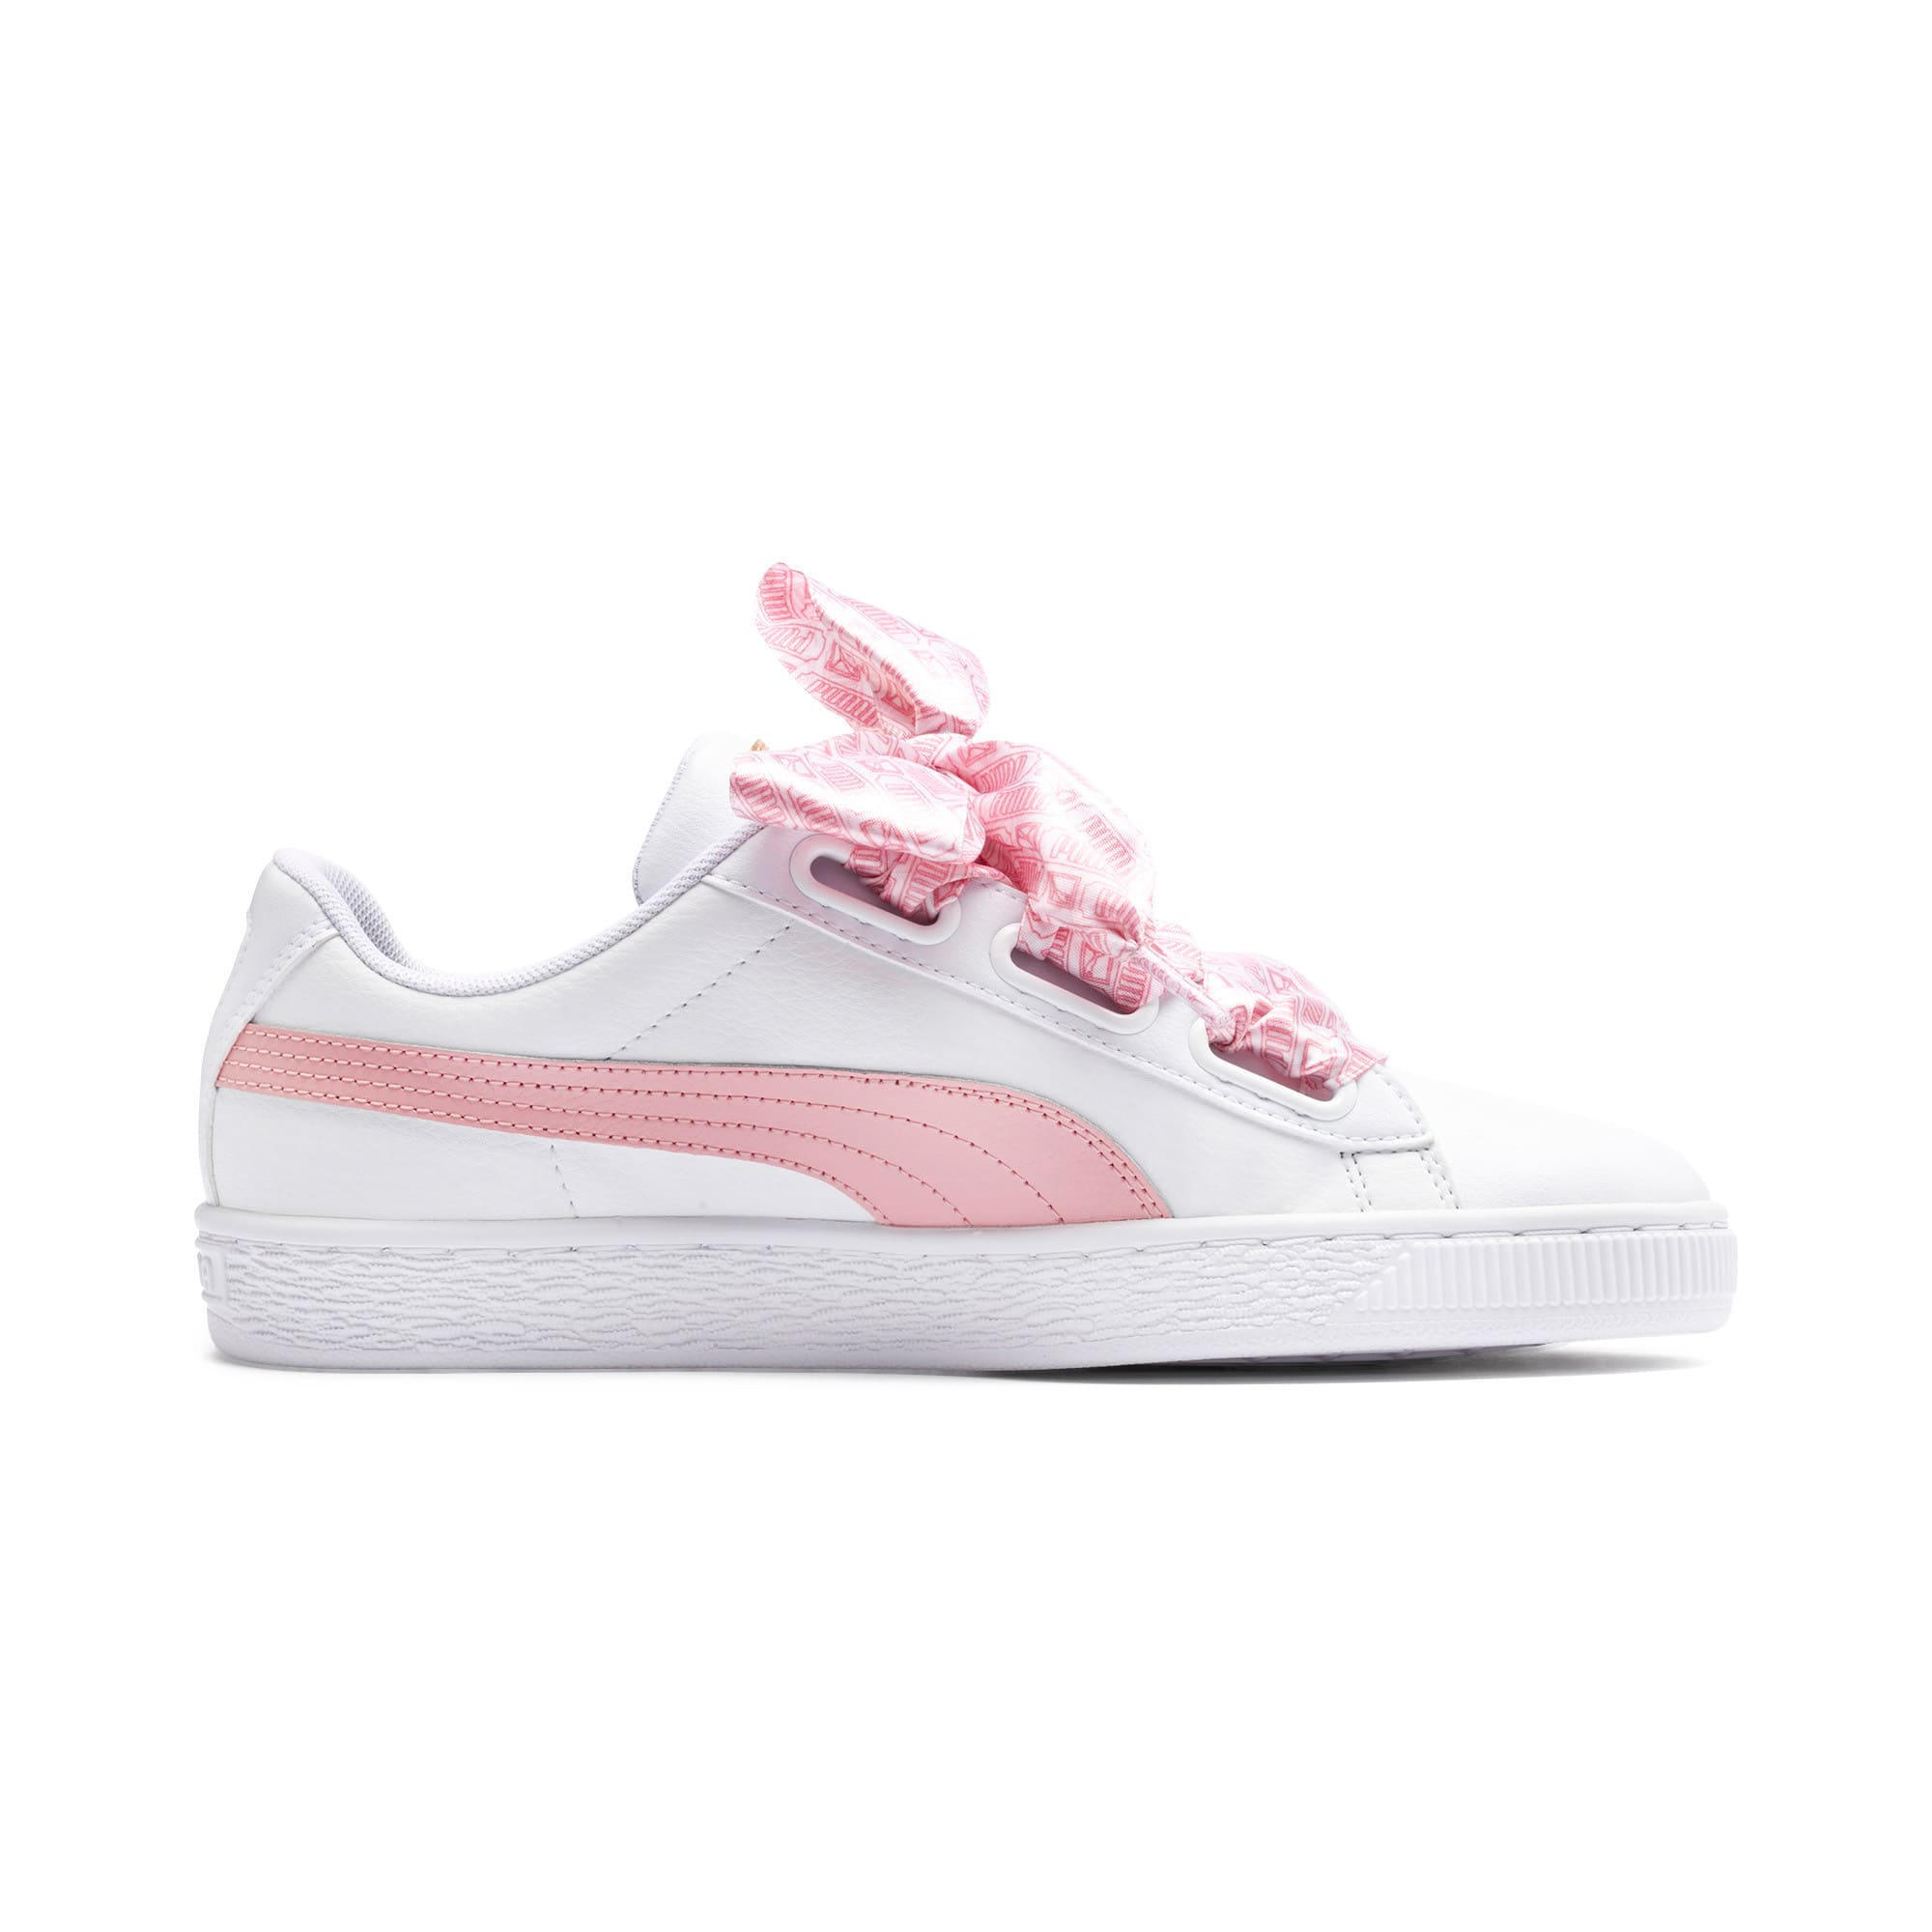 Thumbnail 7 of Basket Heart Reinvent Women's Trainers, Puma White-Bridal Rose, medium-IND